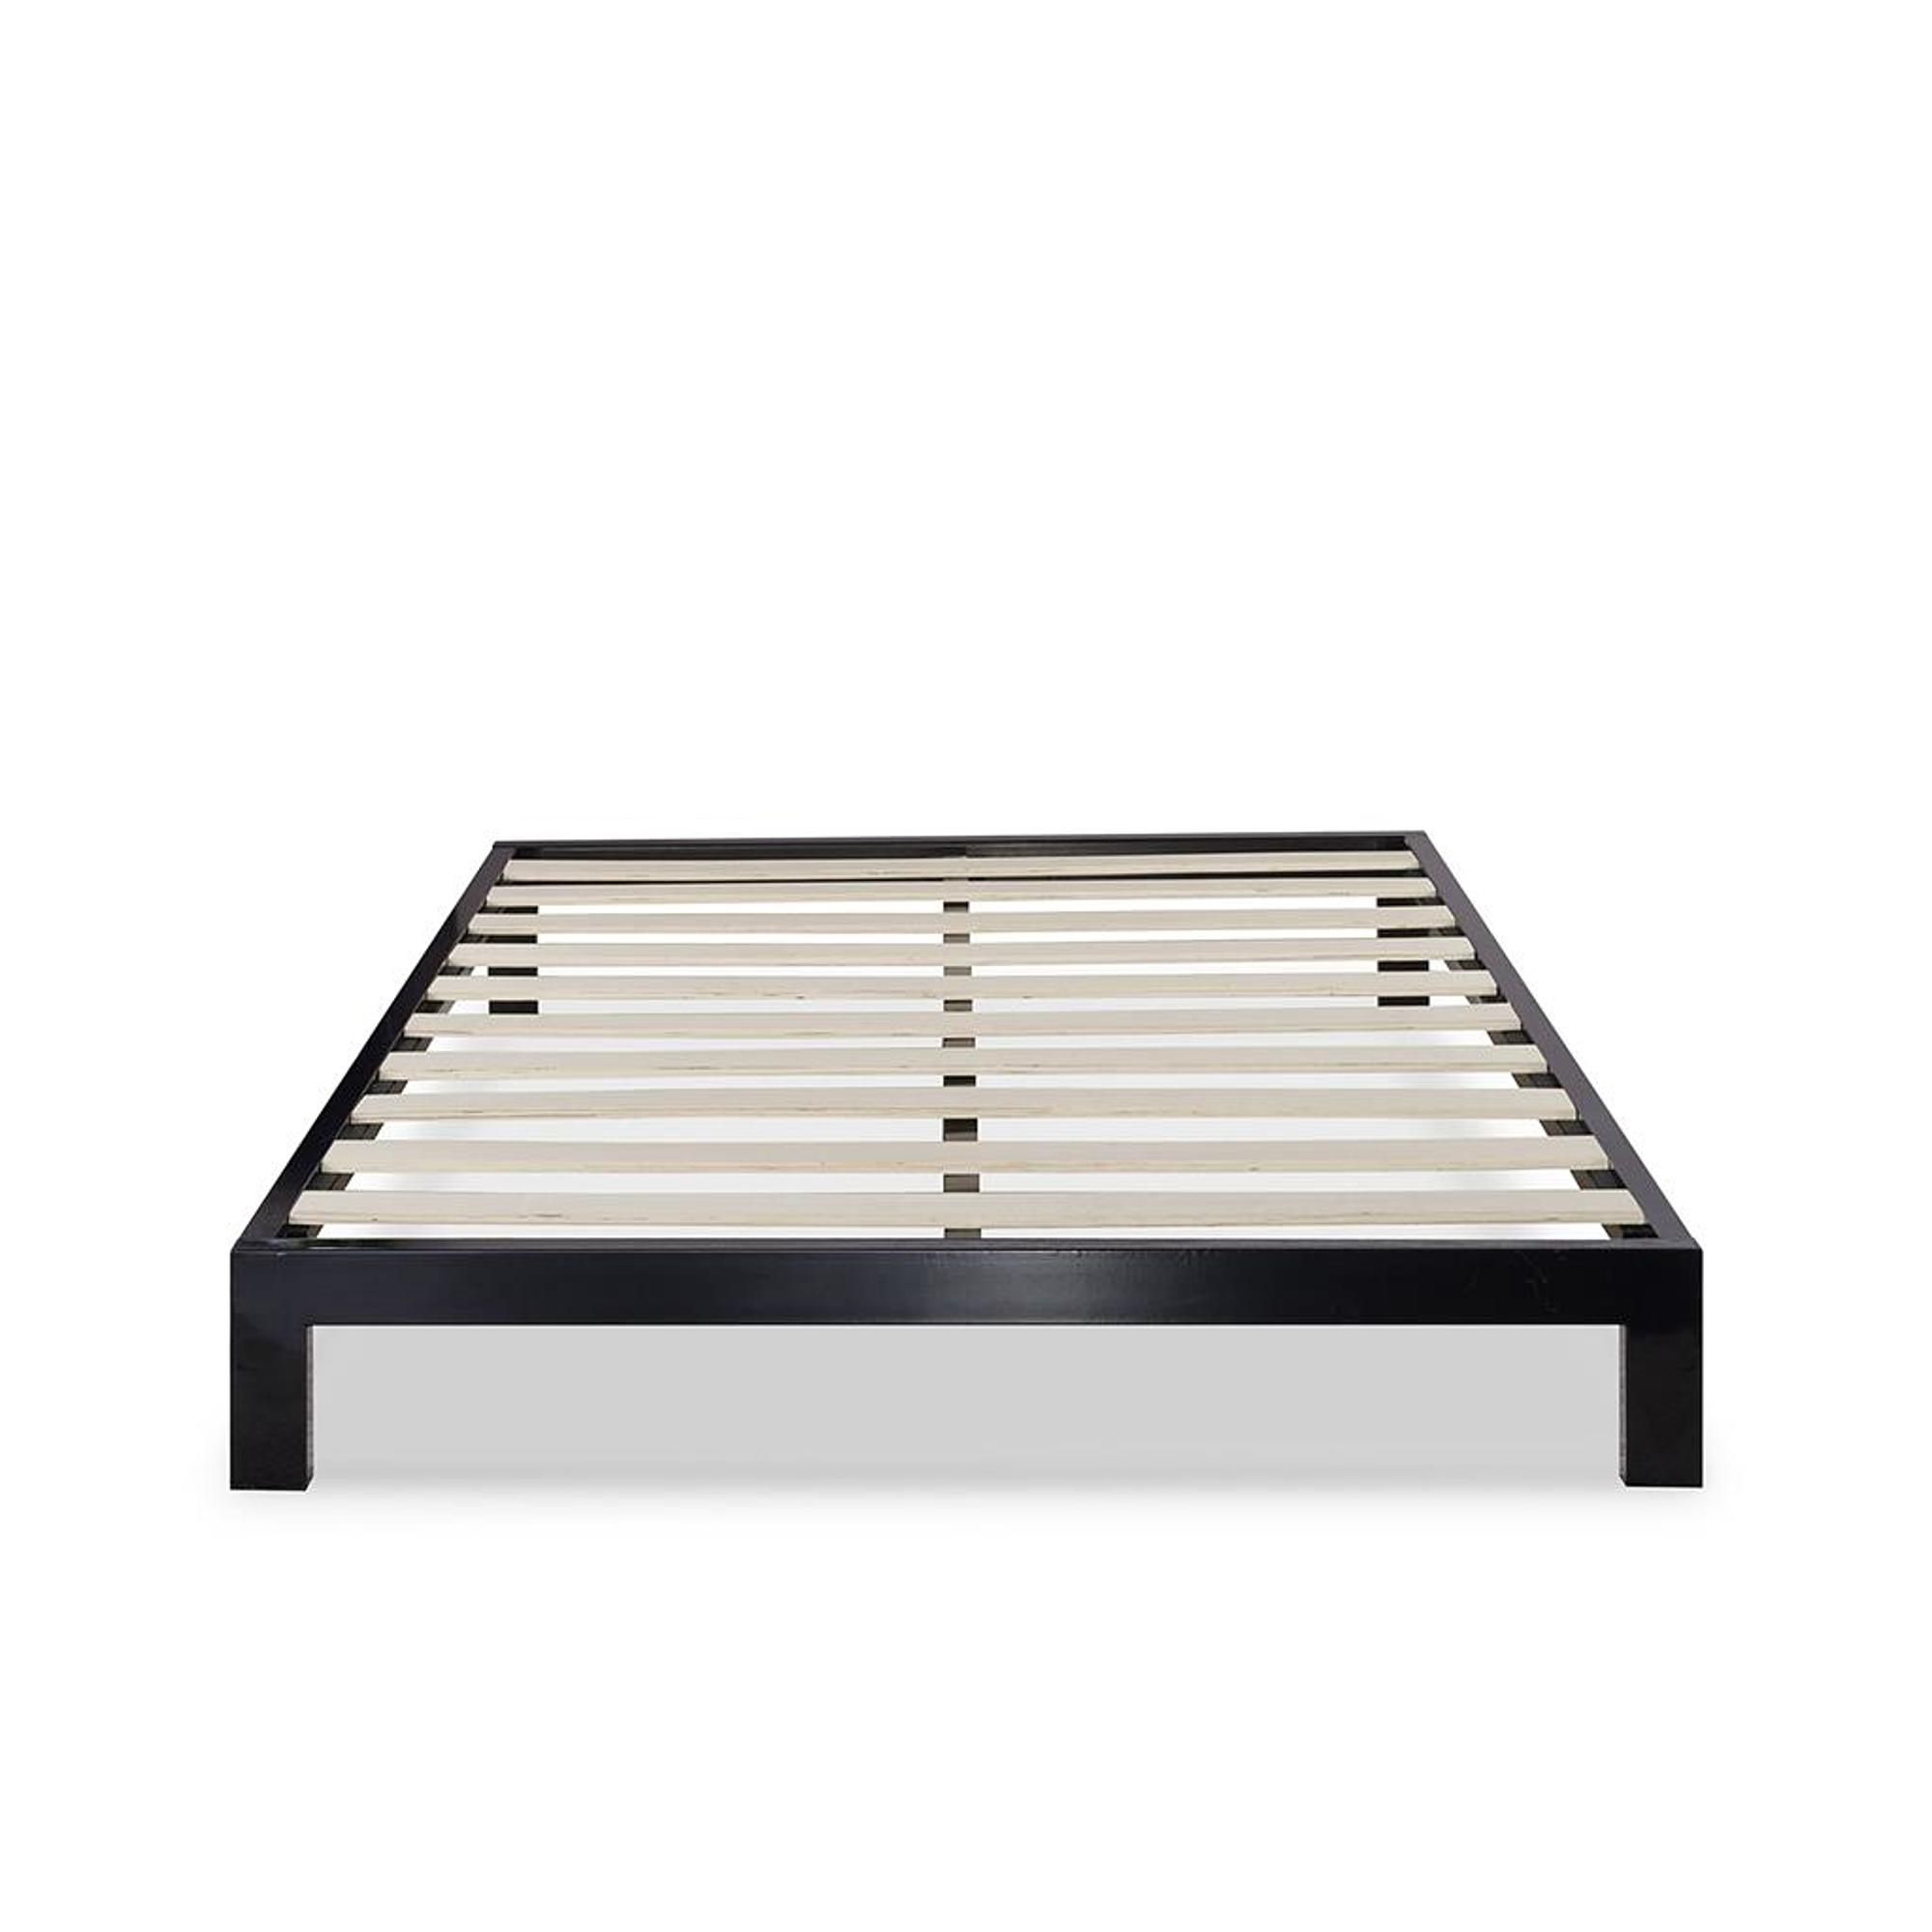 Modern Studio Metal Platform Bed 2000 Home Mattresses Accessories Bed Frames Adjustable Bases Bed Frame Mattress Metal Beds Metal Platform Bed